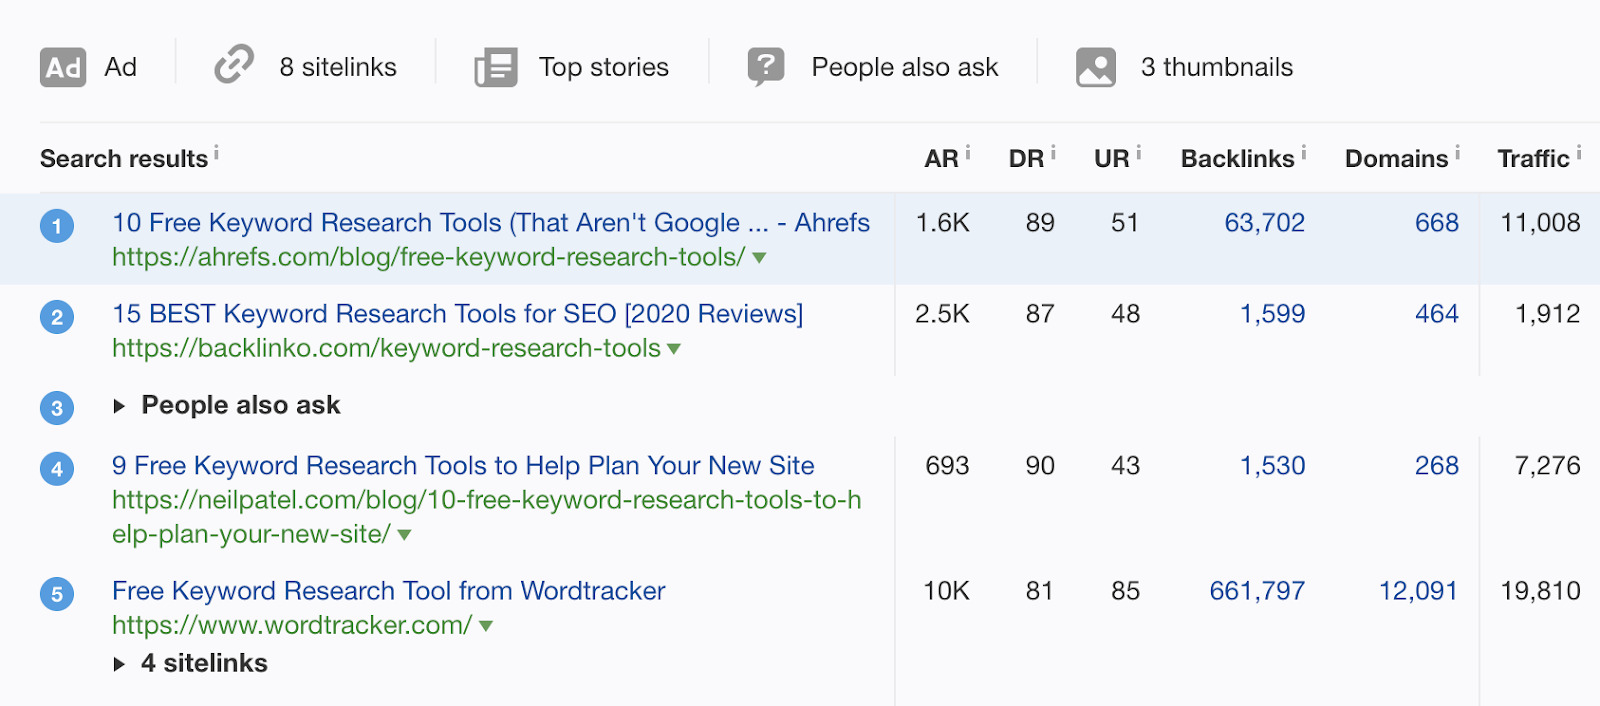 7 keyword research tools ranking